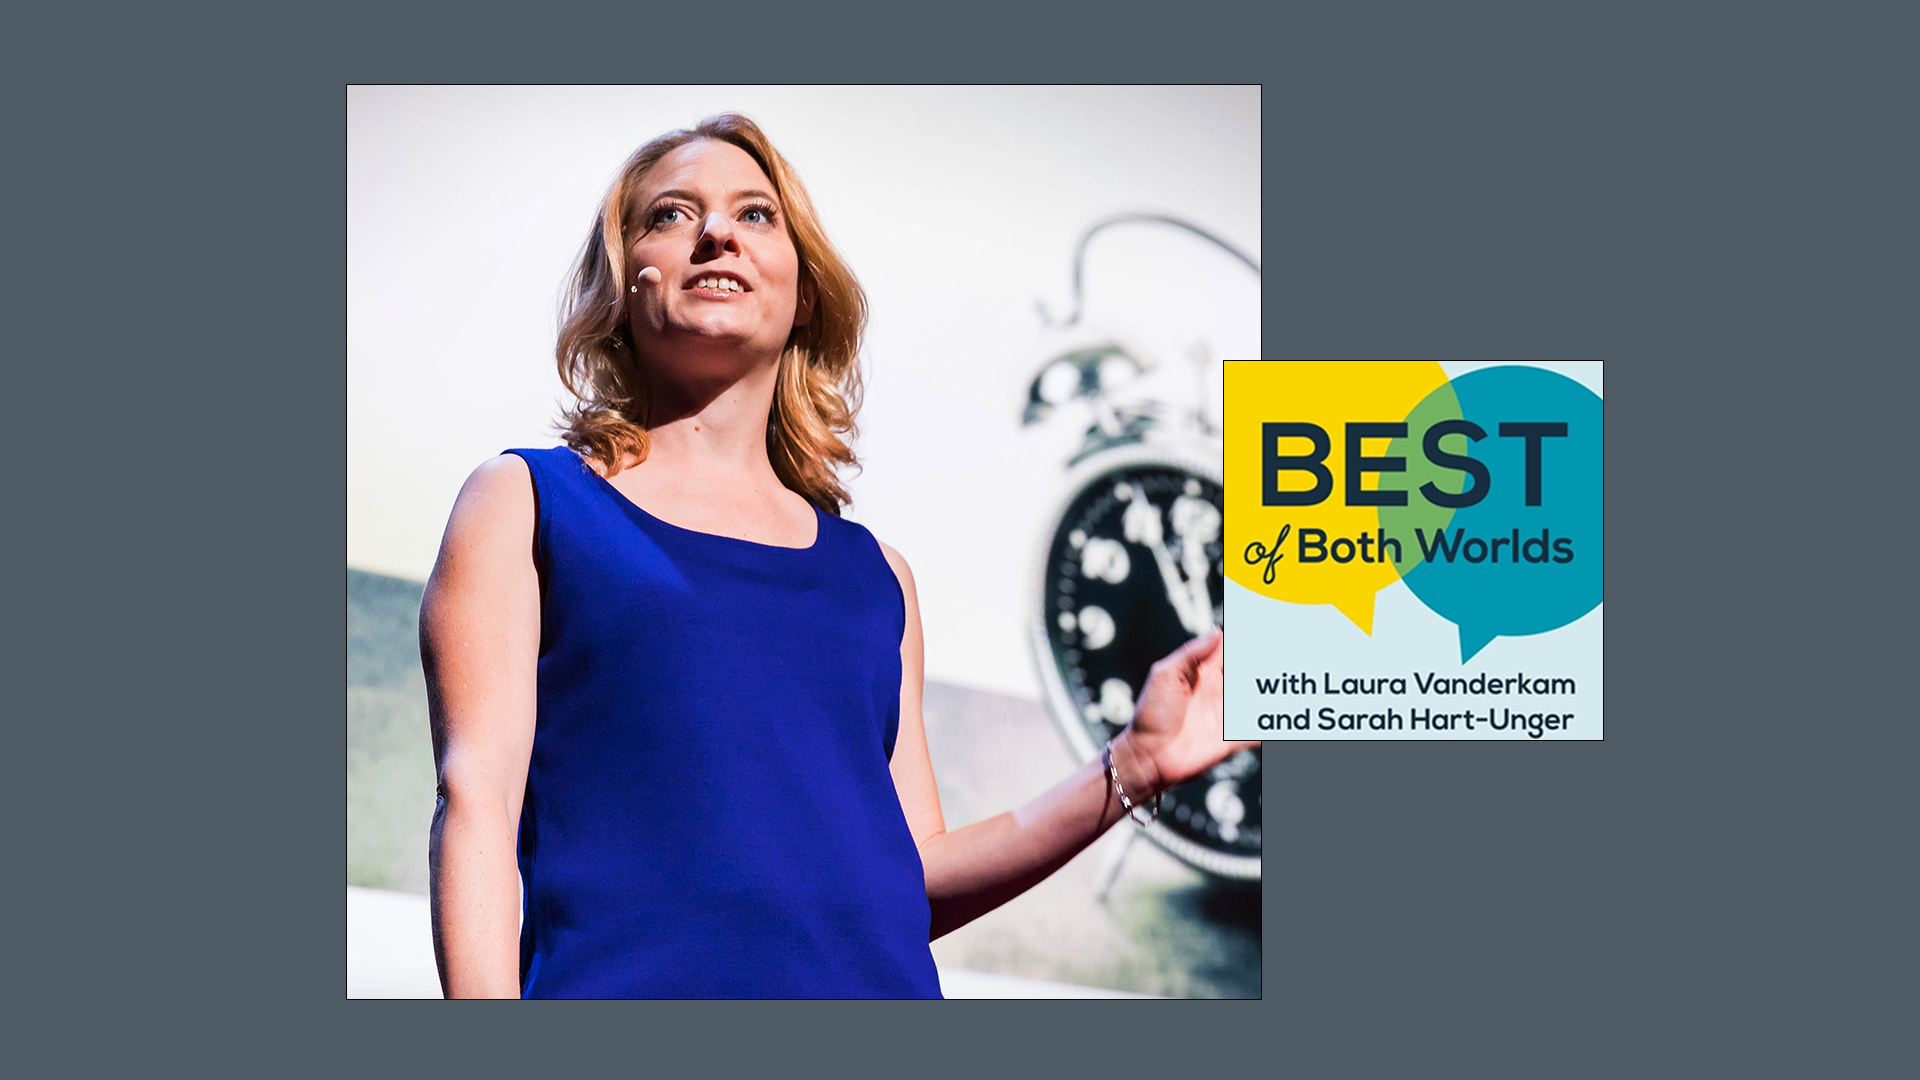 Laura Vanderkam shares the Best of Both Worlds Podcast Story